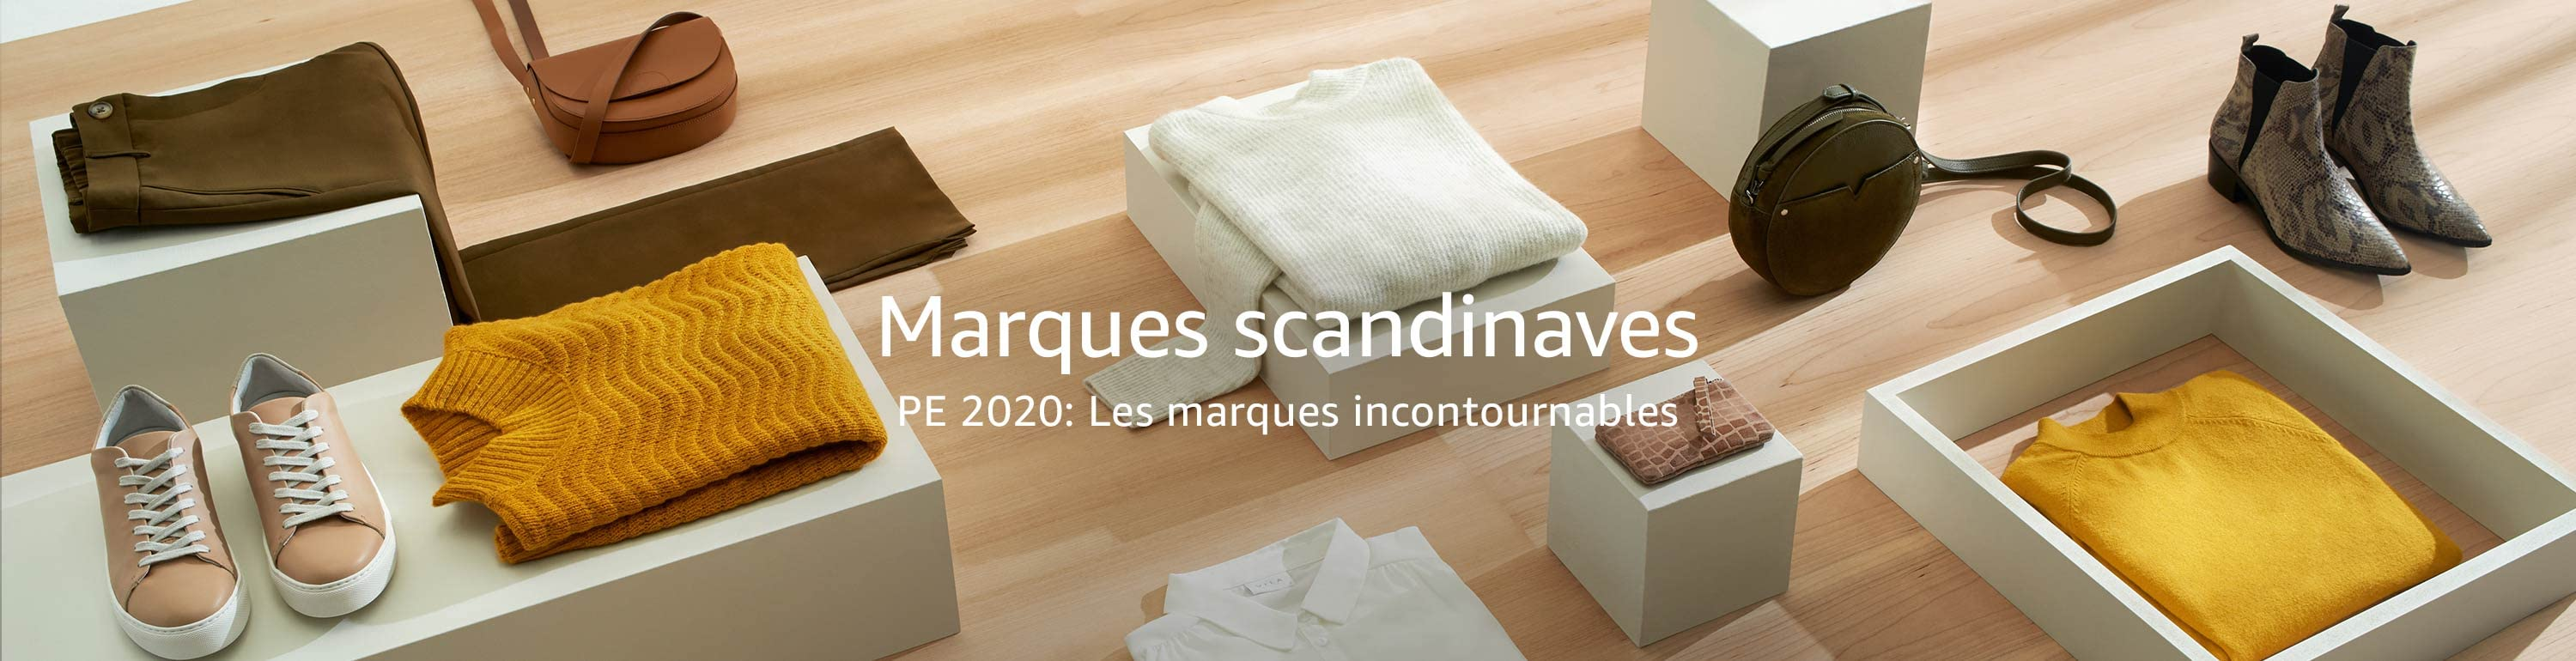 Marques scandinaves